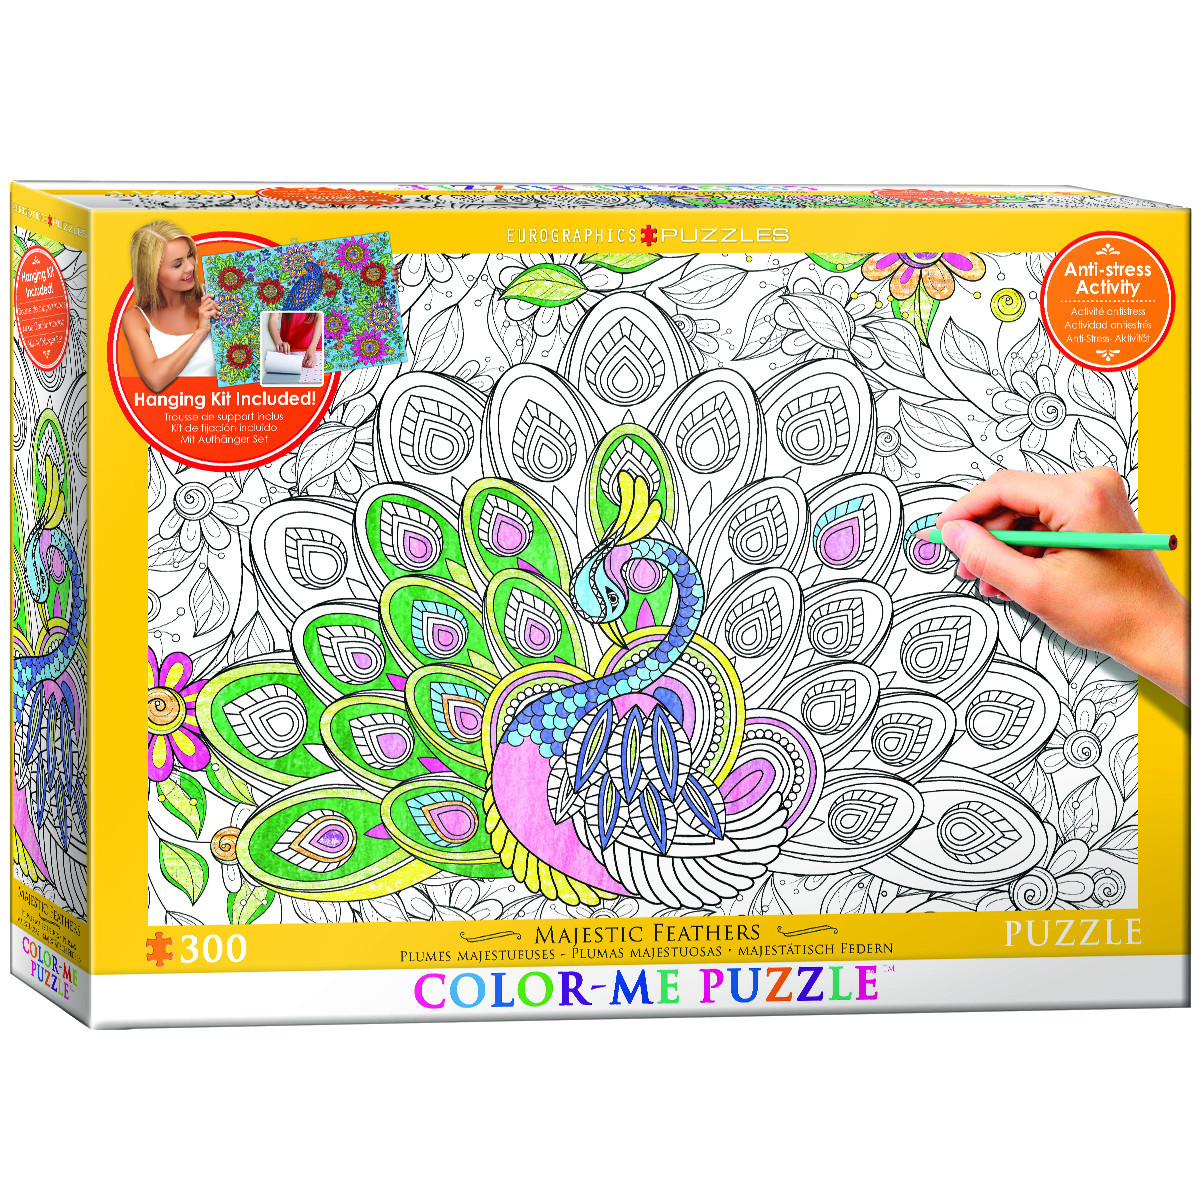 Majestic Feathers Birds Coloring Puzzle